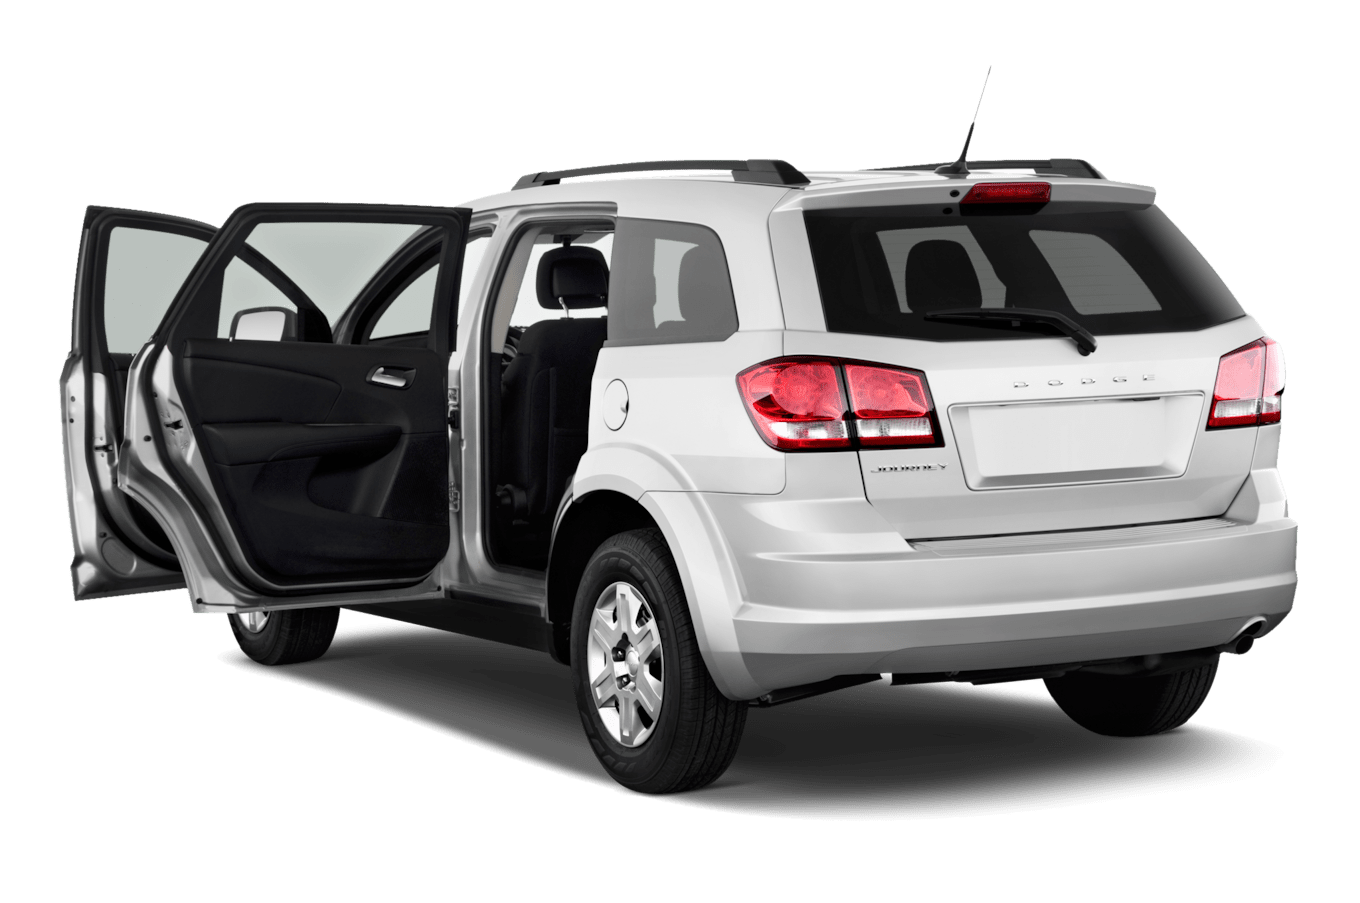 2016 Dodge Journey Reviews and Rating  Motor Trend